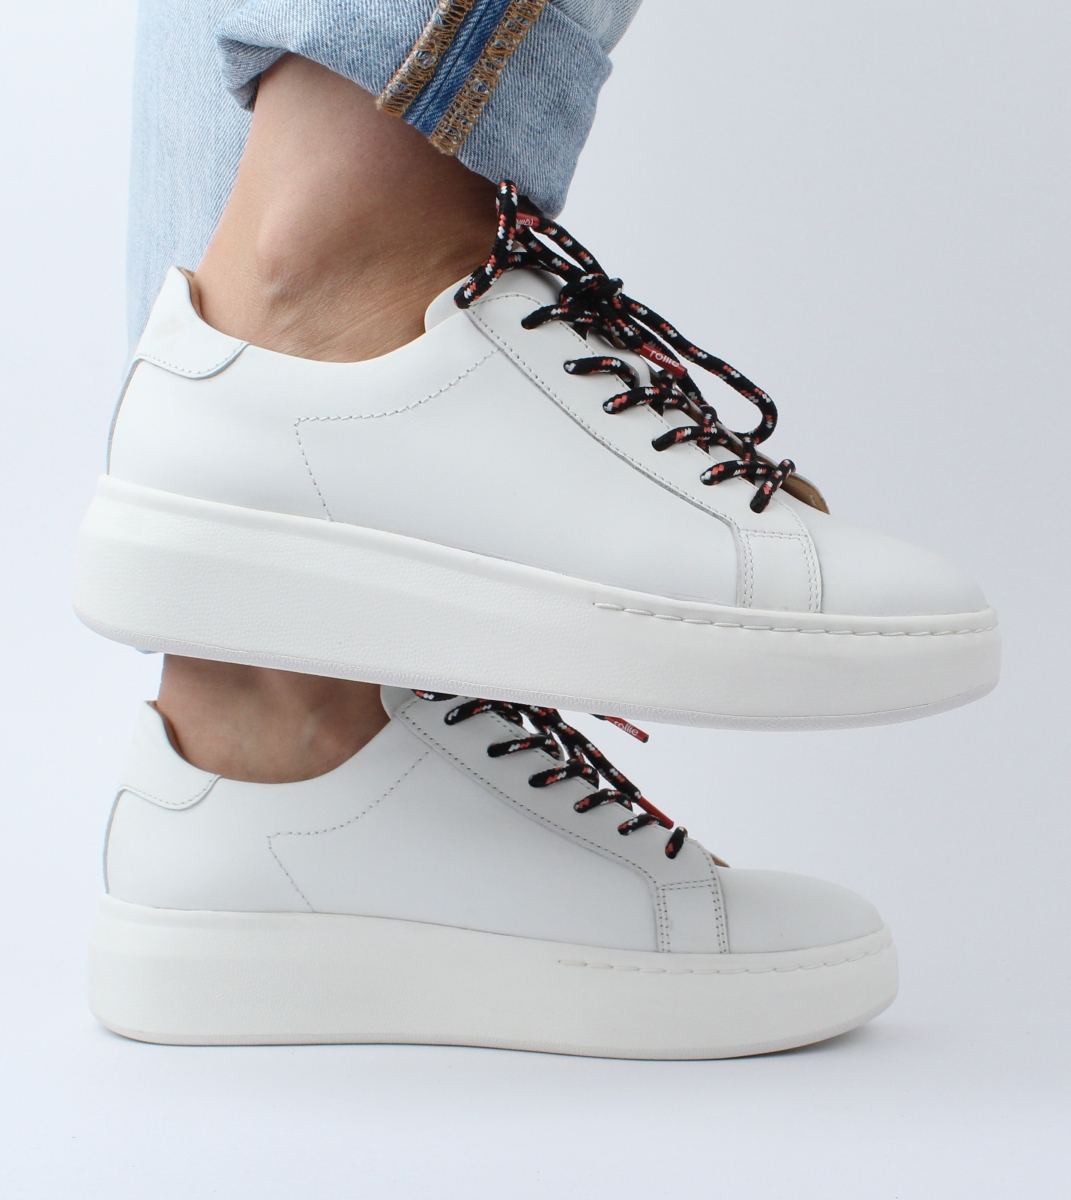 Rollie-City_Sneaker-White-M4